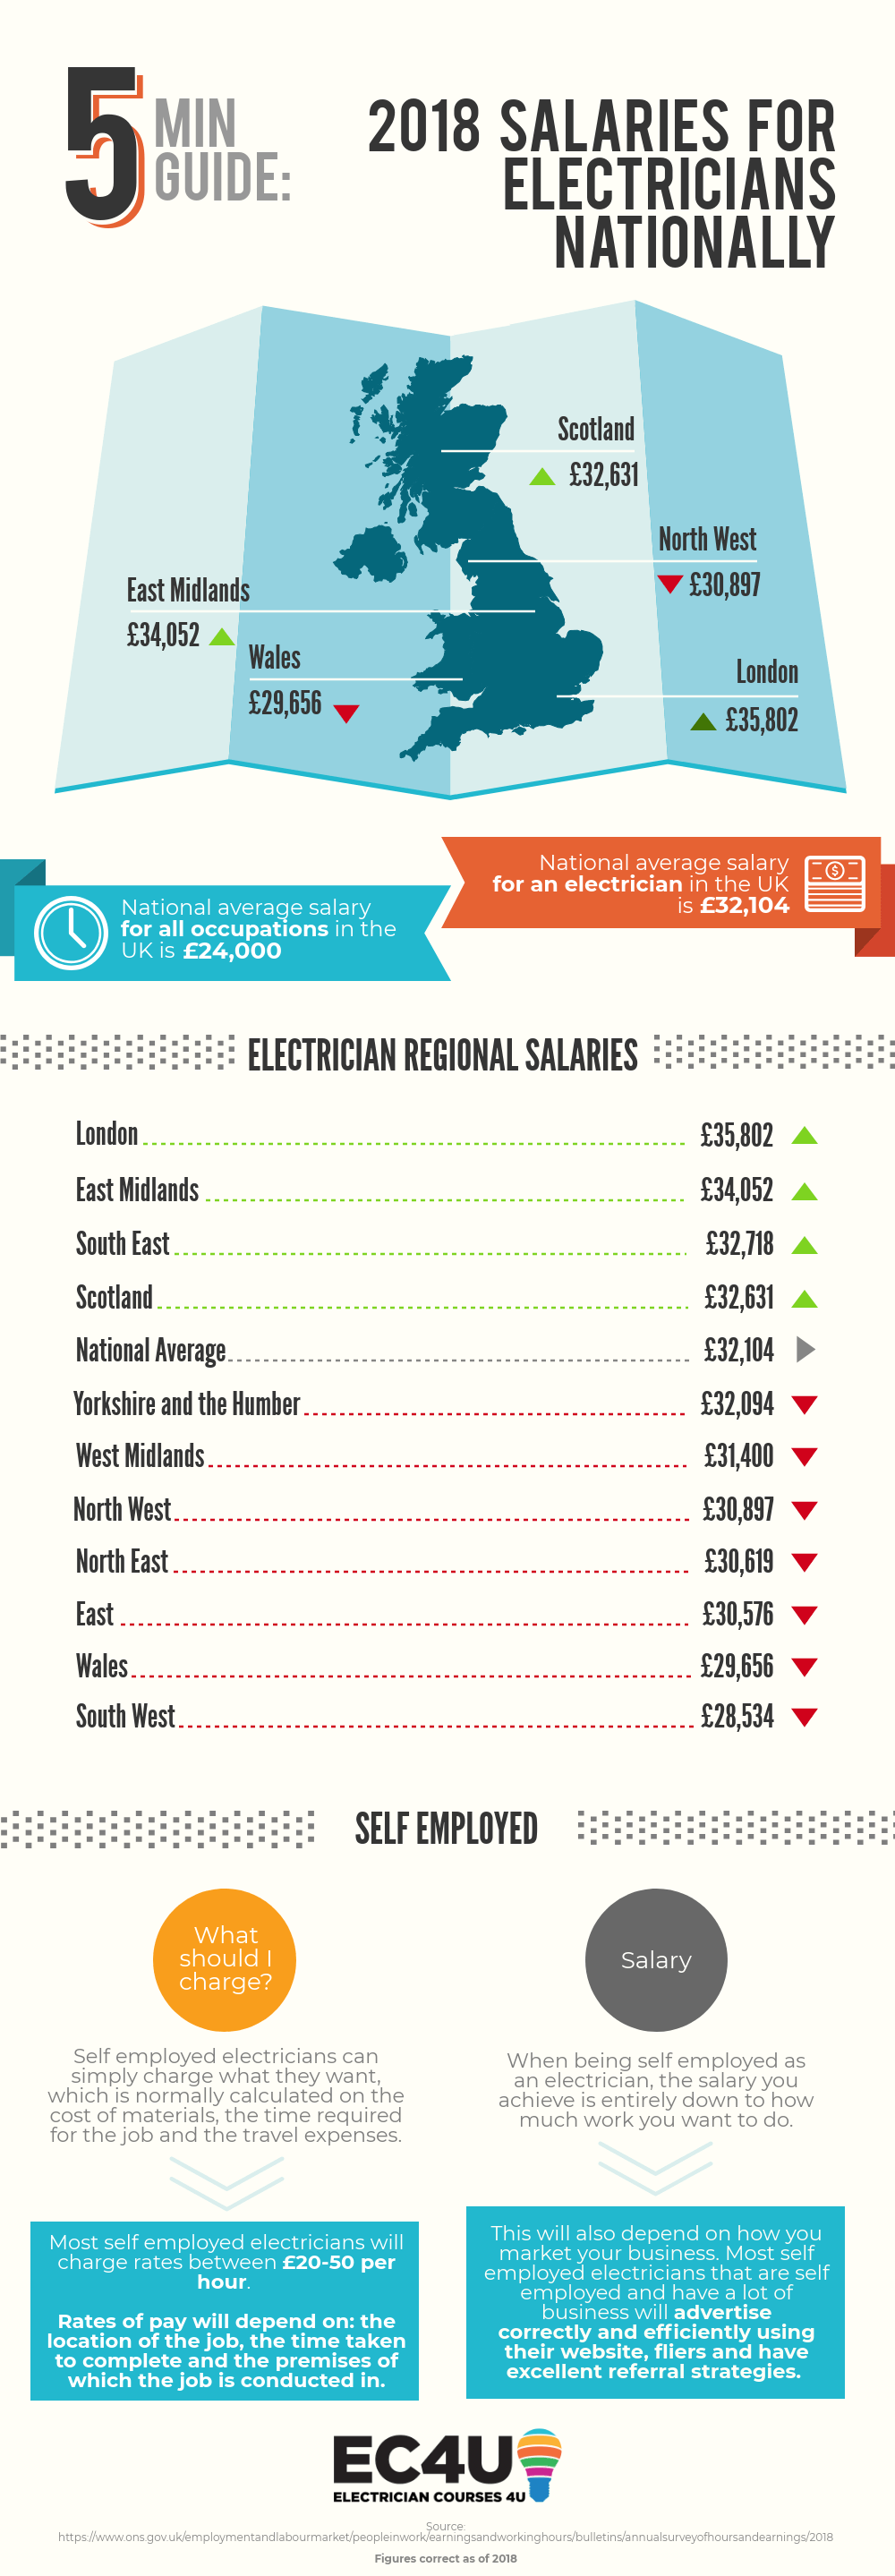 How much do Electricians earn? Average Electrician Salary 2018.